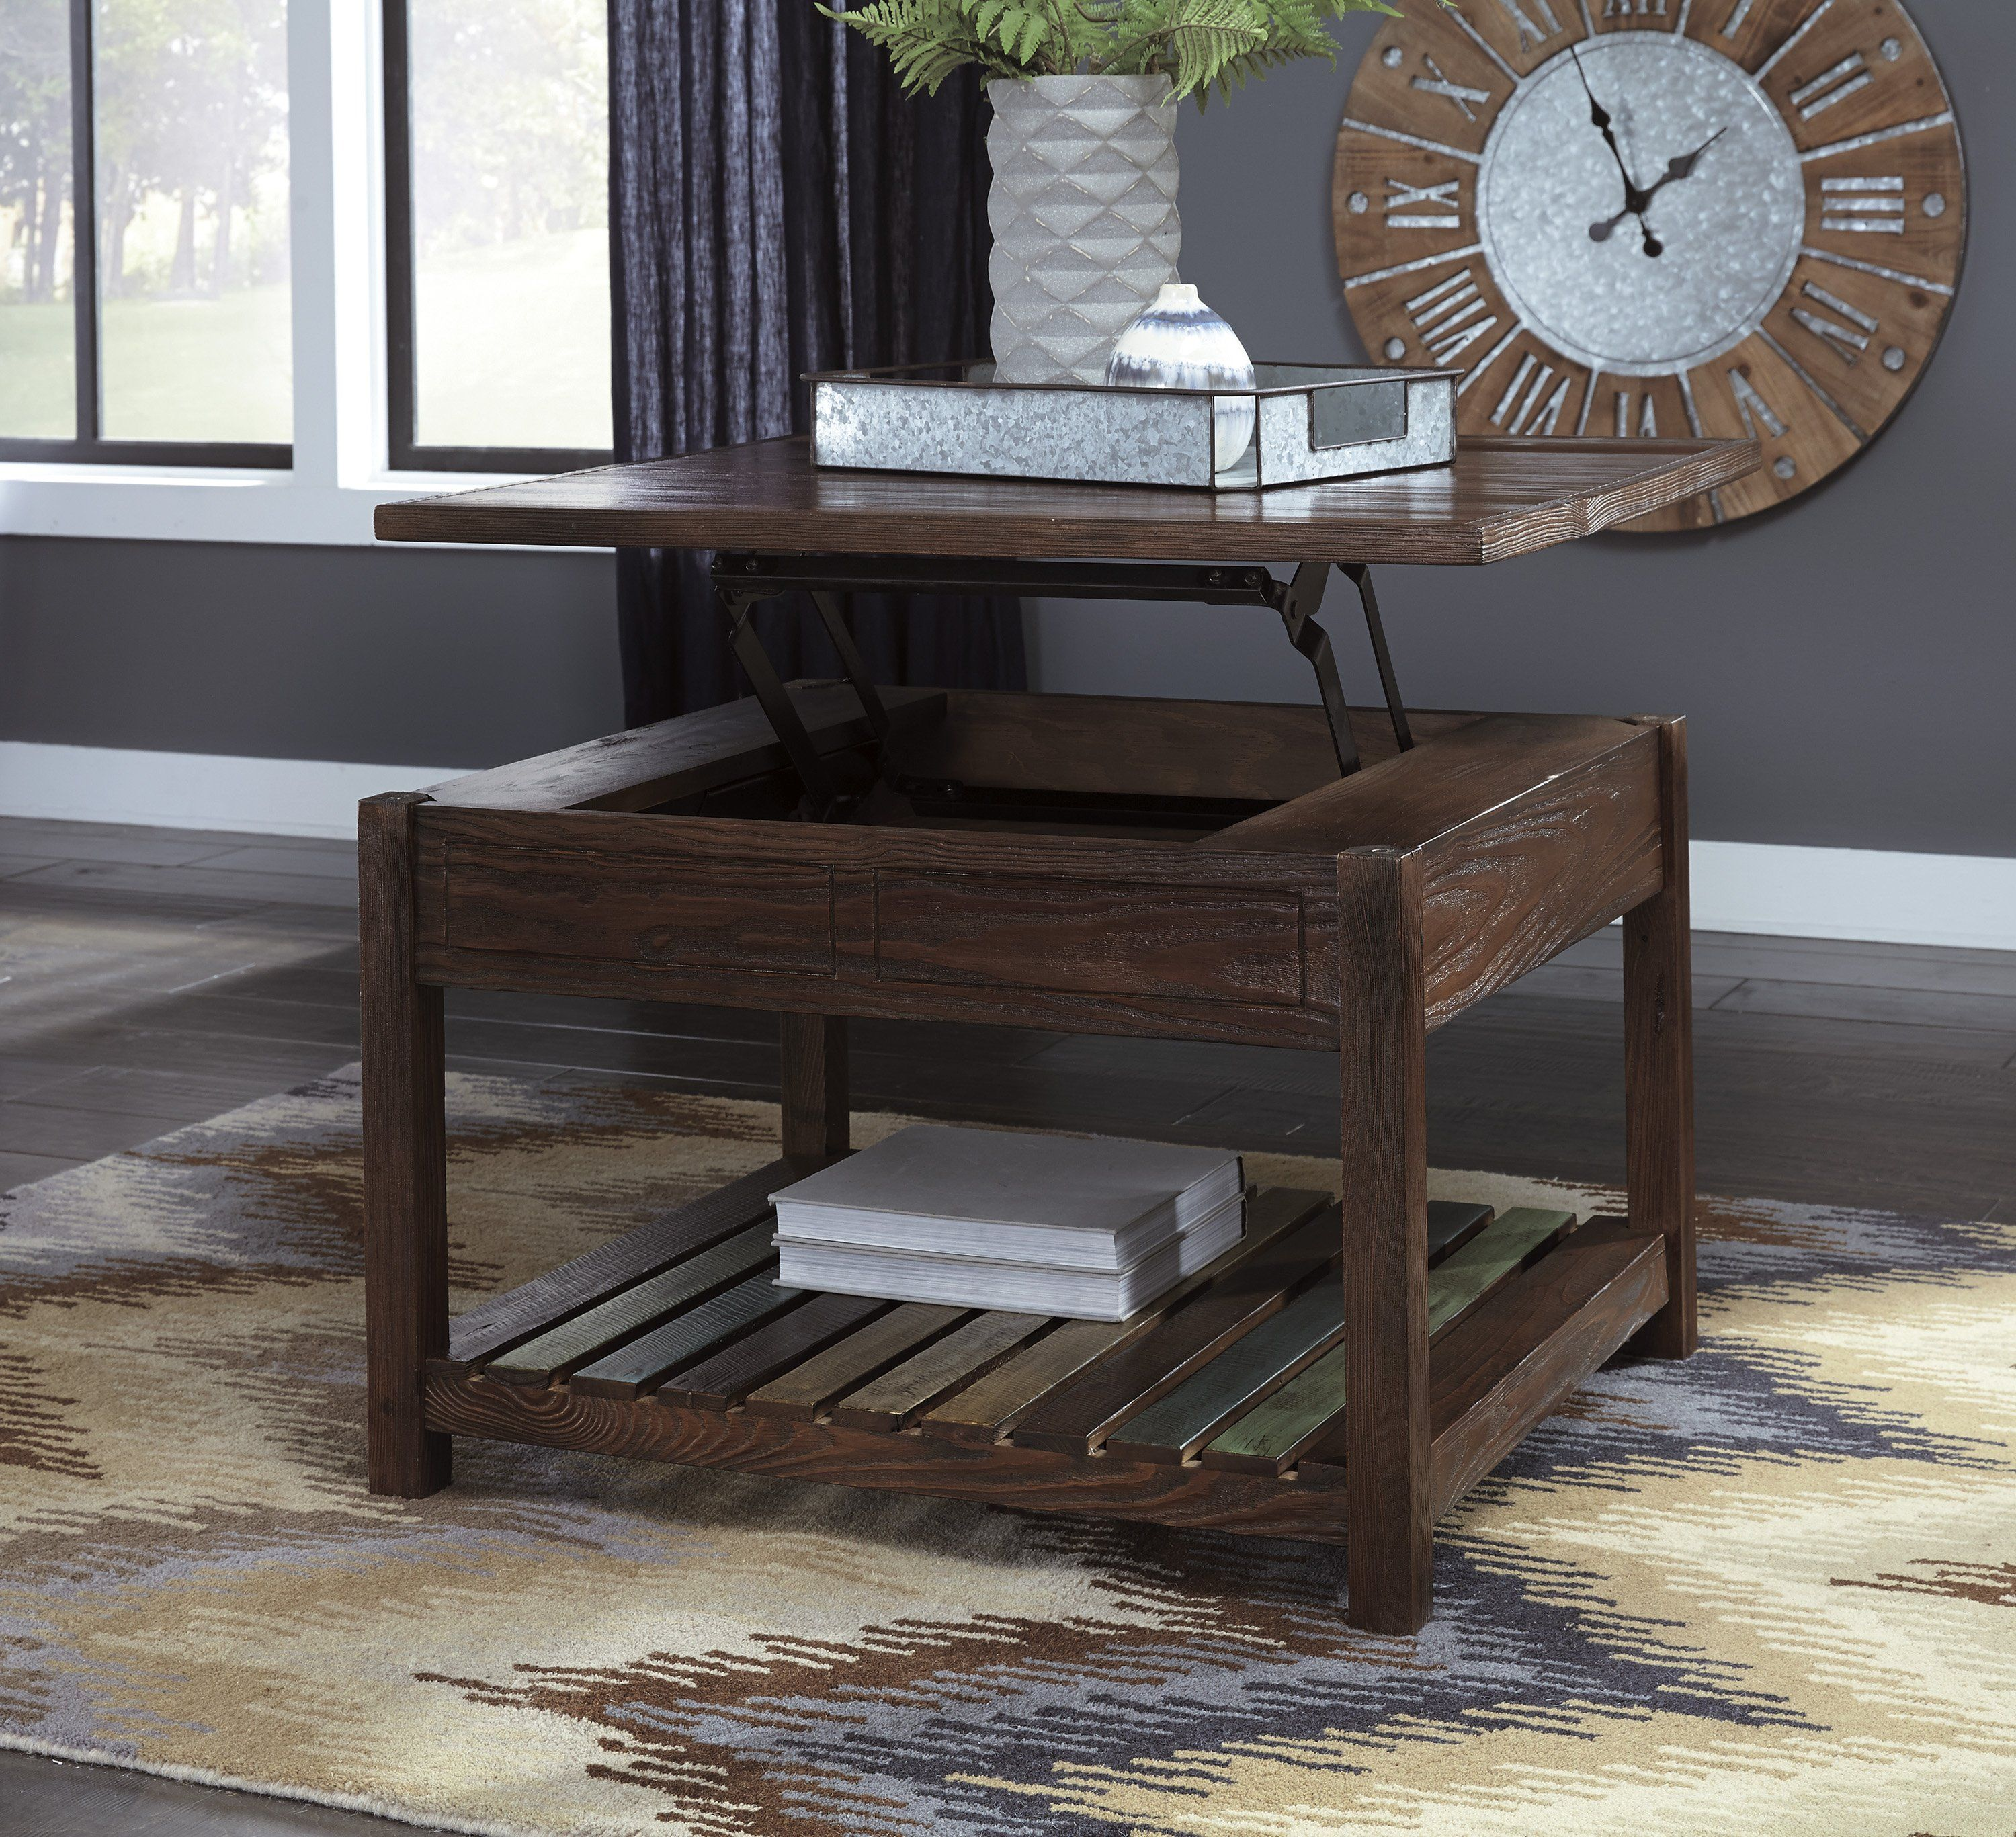 Mestler Lift Top Coffee Table Coffee Table Slatted Shelves Lift Top Coffee Table [ 2734 x 3000 Pixel ]